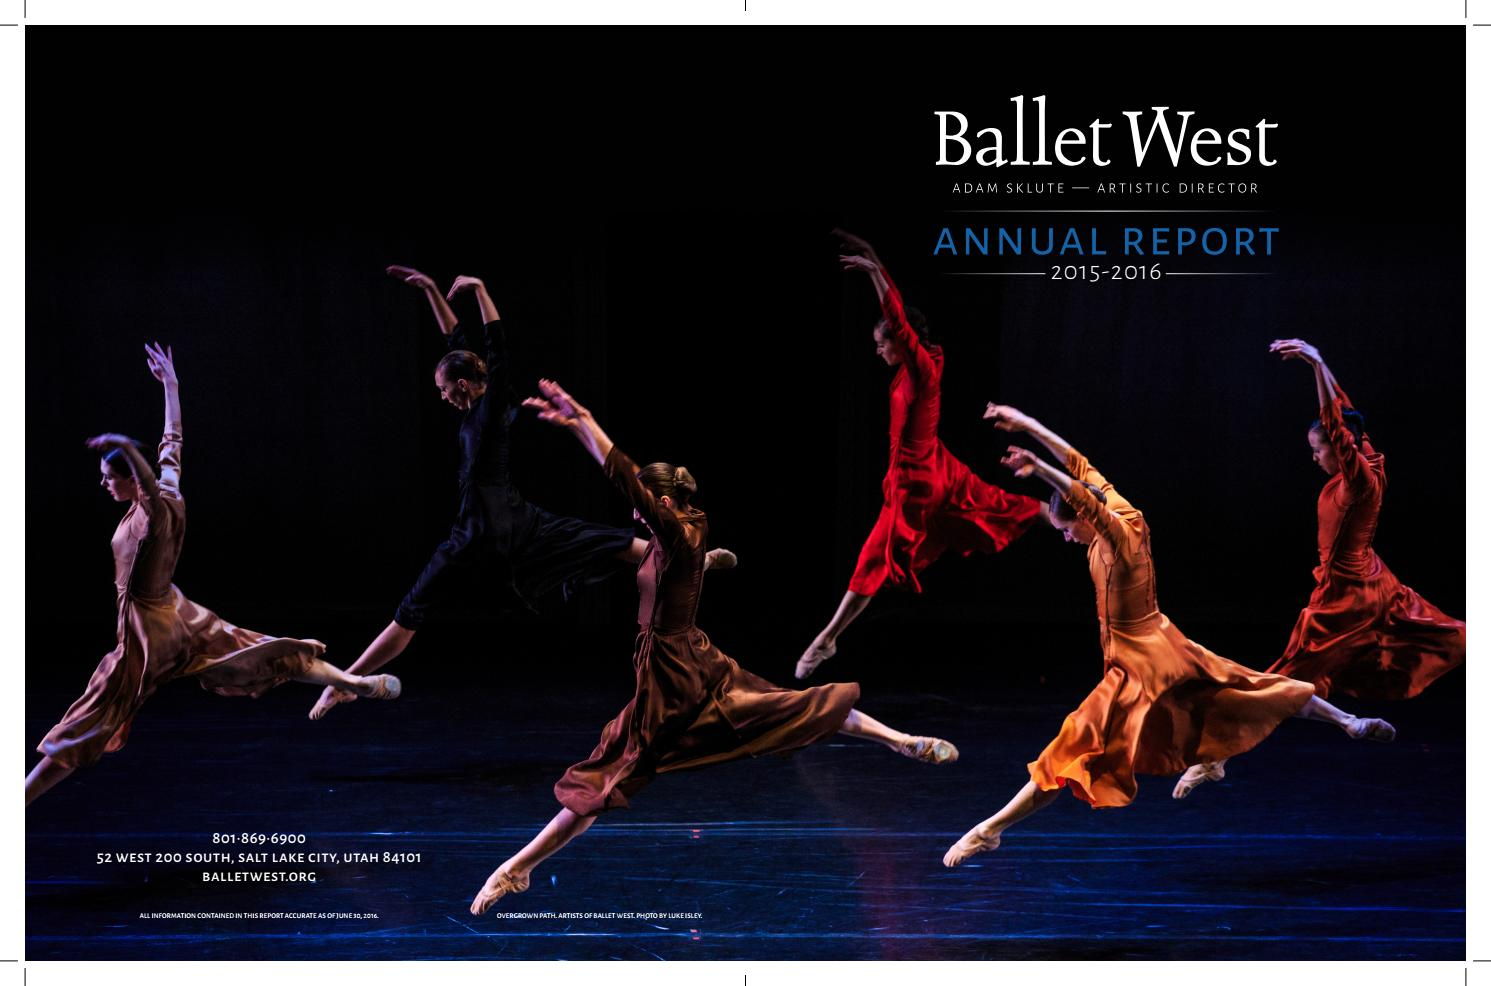 2014 2015 annual report by ballet west issuu ballet west 2015 2016 annual report